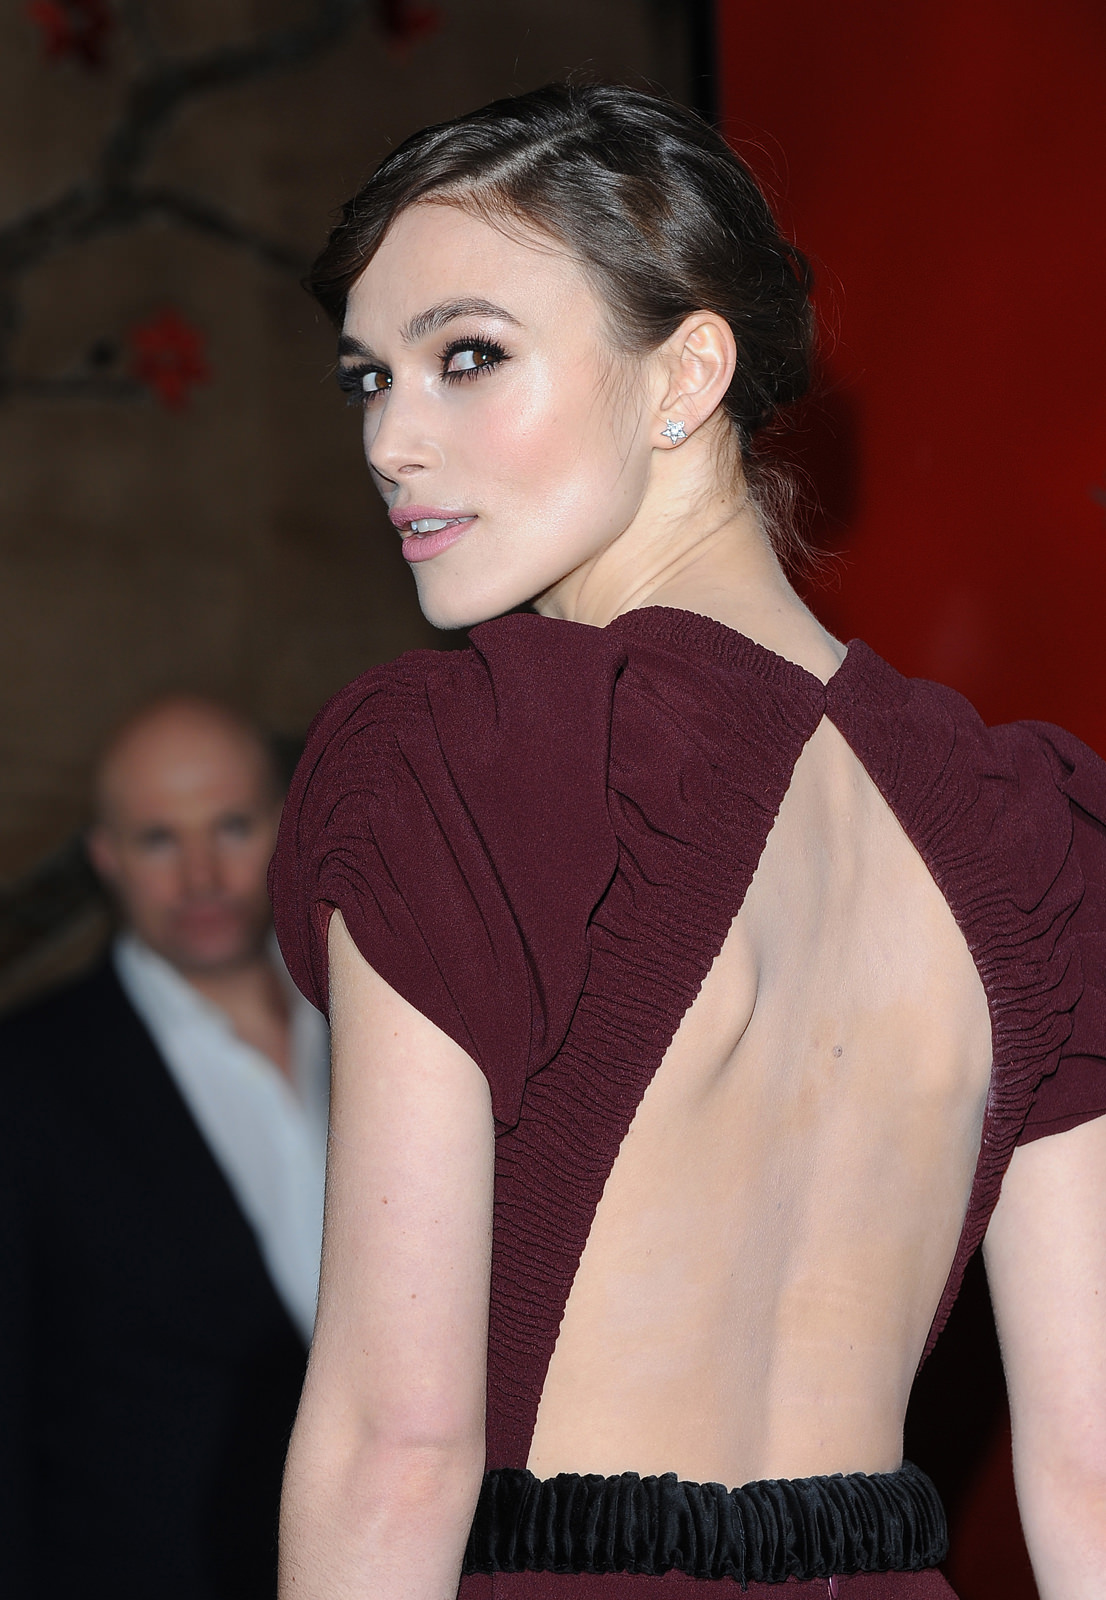 Keira Knightley Photo Gallery